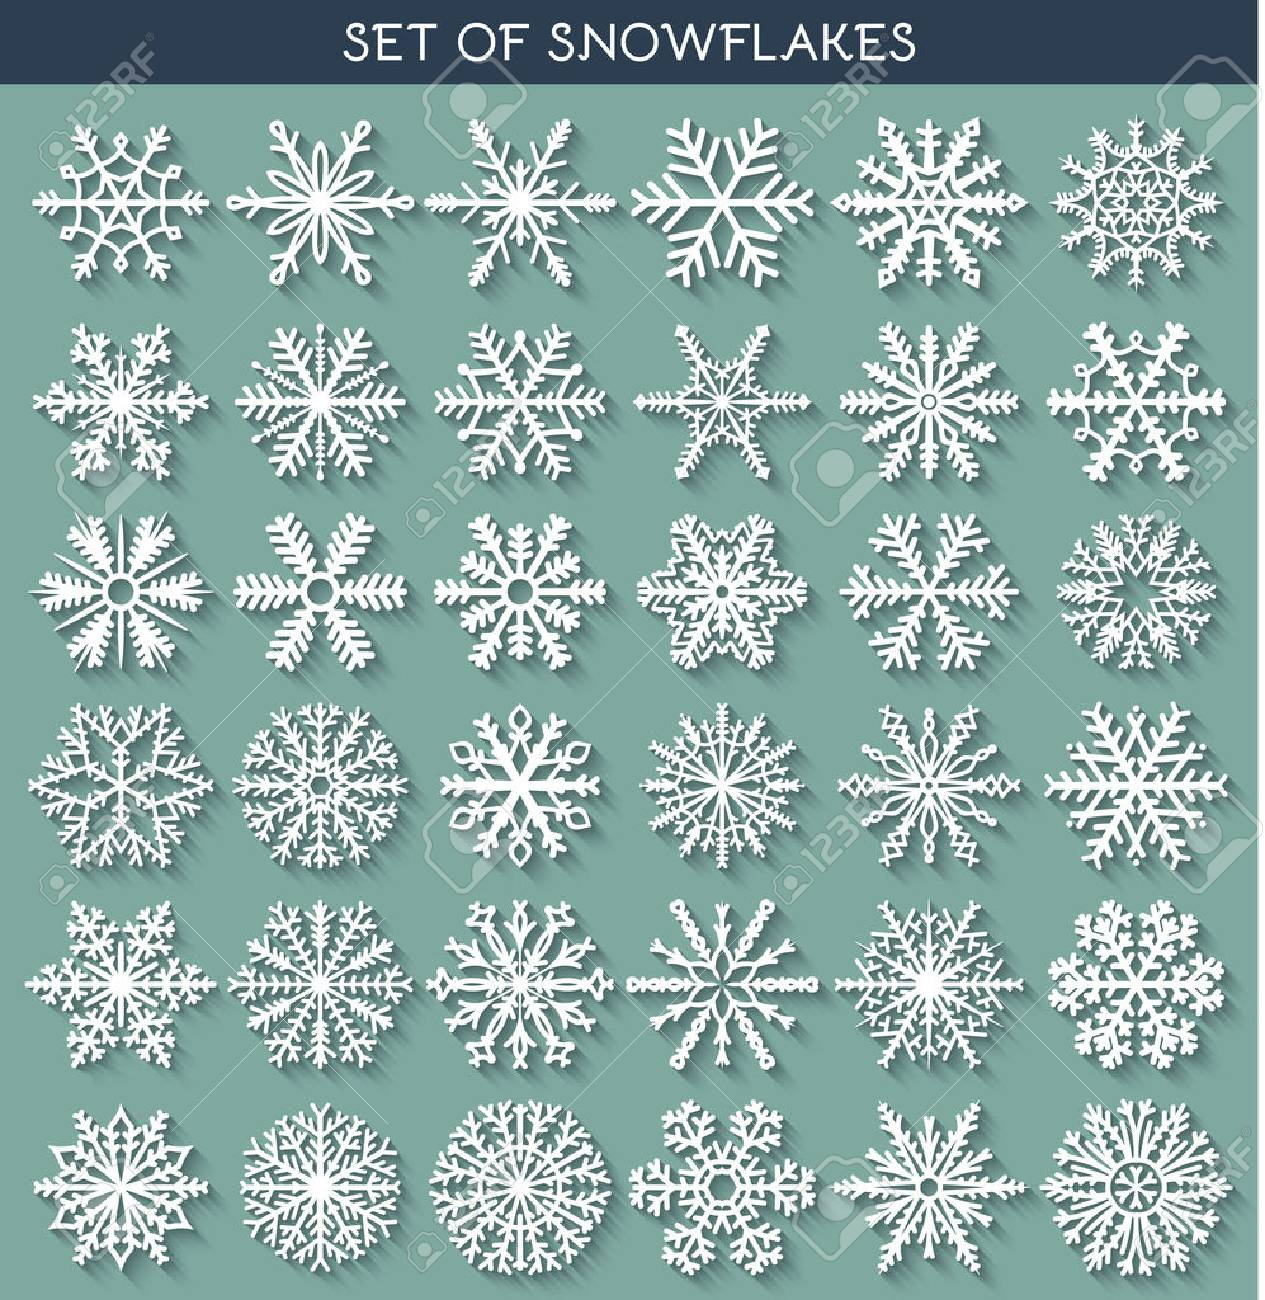 Set 36 white different snowflakes of handmade with long shadow. Snowflake Flat. New Year's symbols. Snowflakes for design. Winter objects. Festive elements. Snowflake Doodle. Snowflake Sketch - 46667596